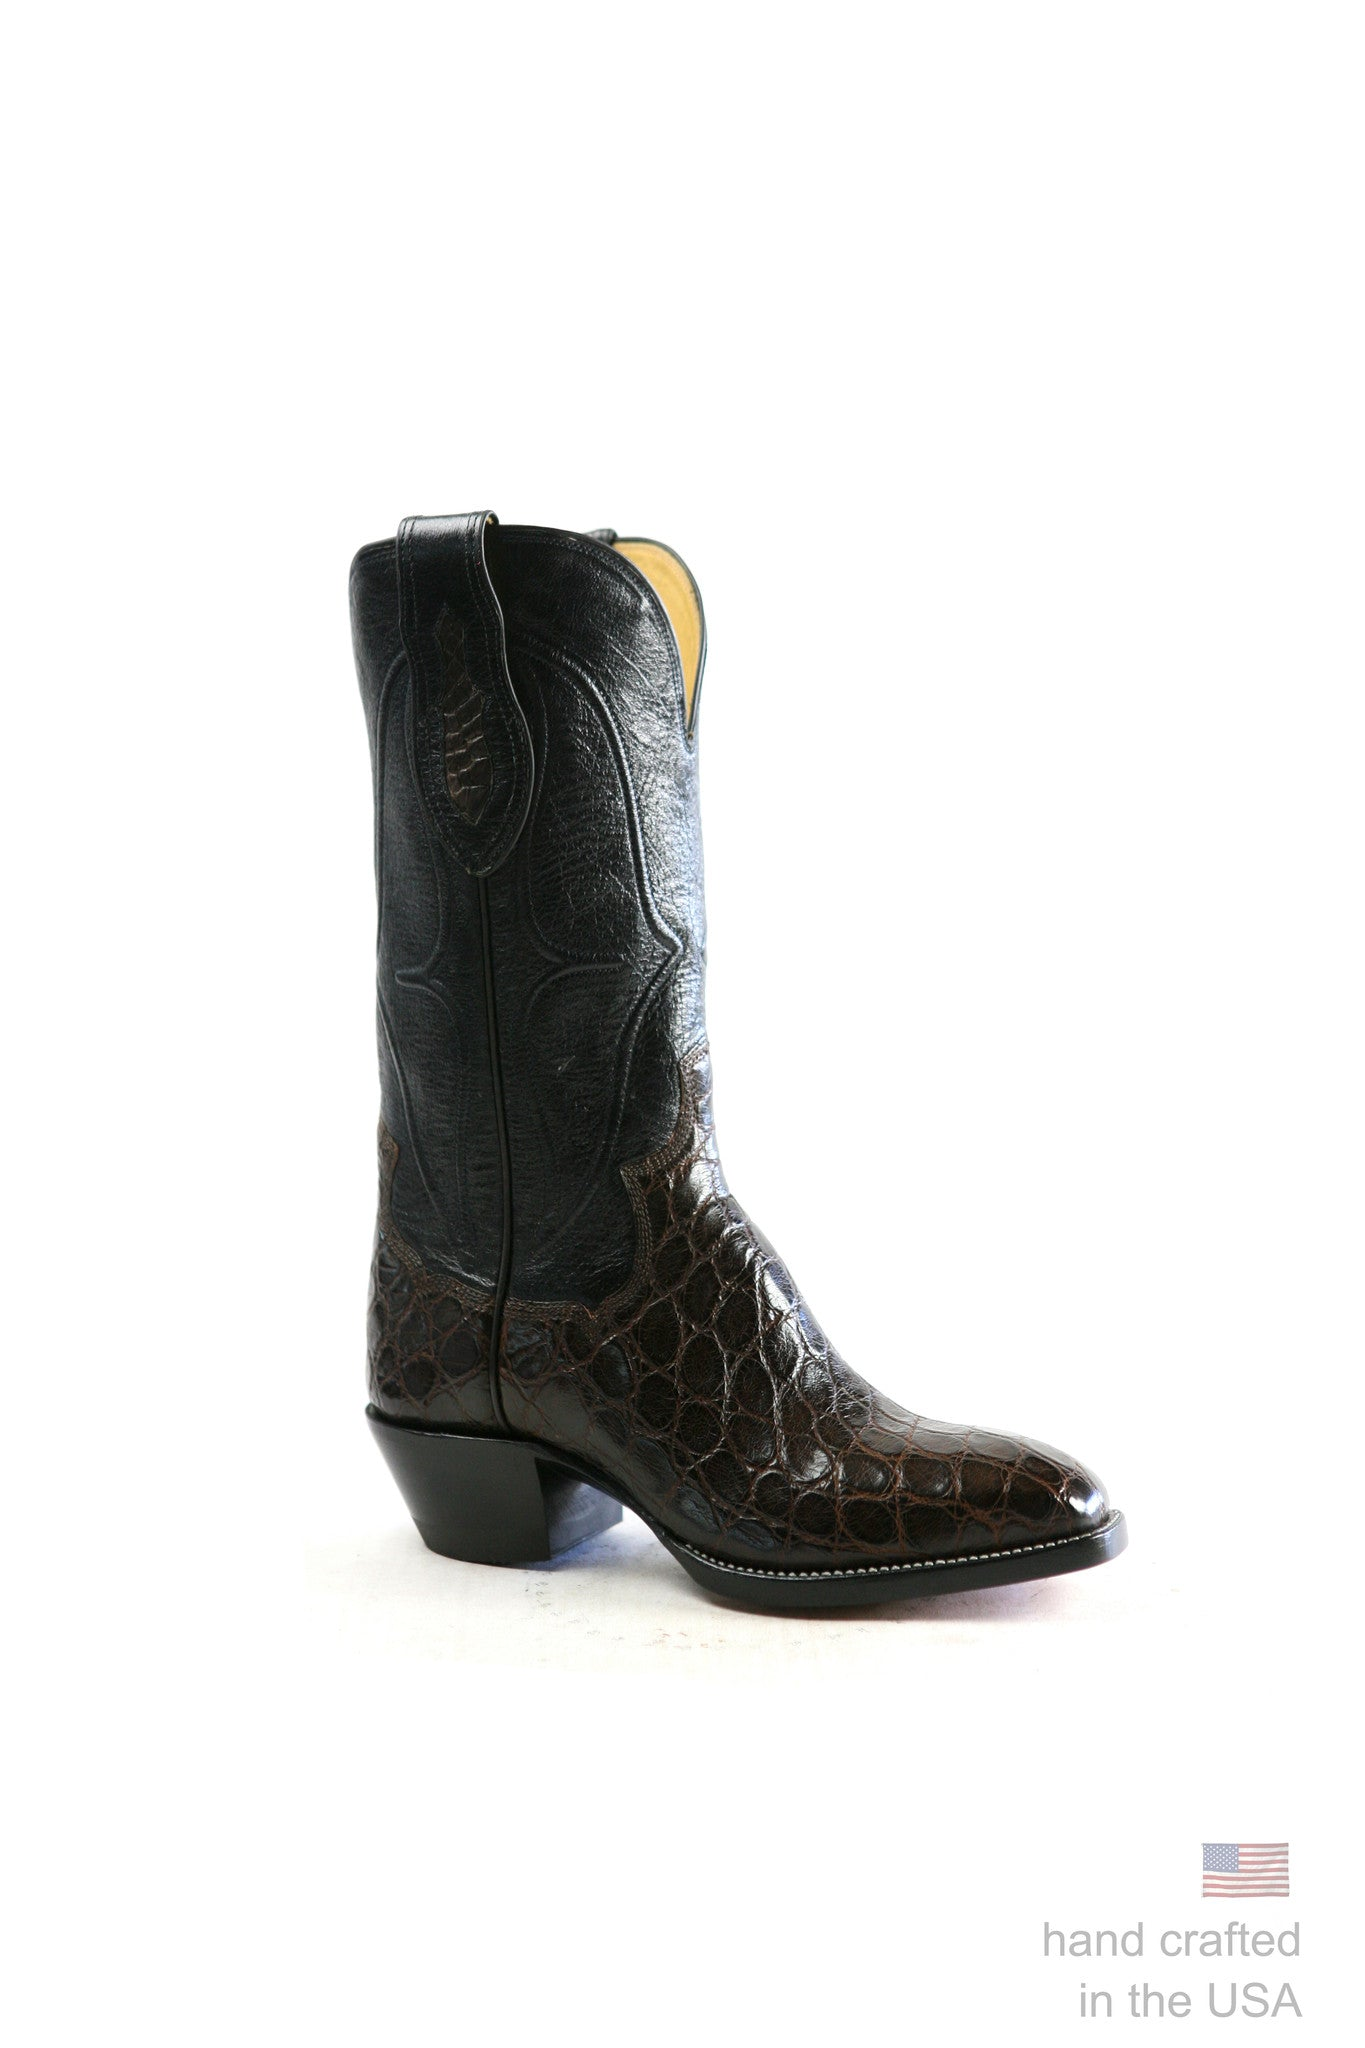 6606fd3c7ff Custom Alligator Cowboy Boots - Handmade in the U.S.A. – Paul Bond